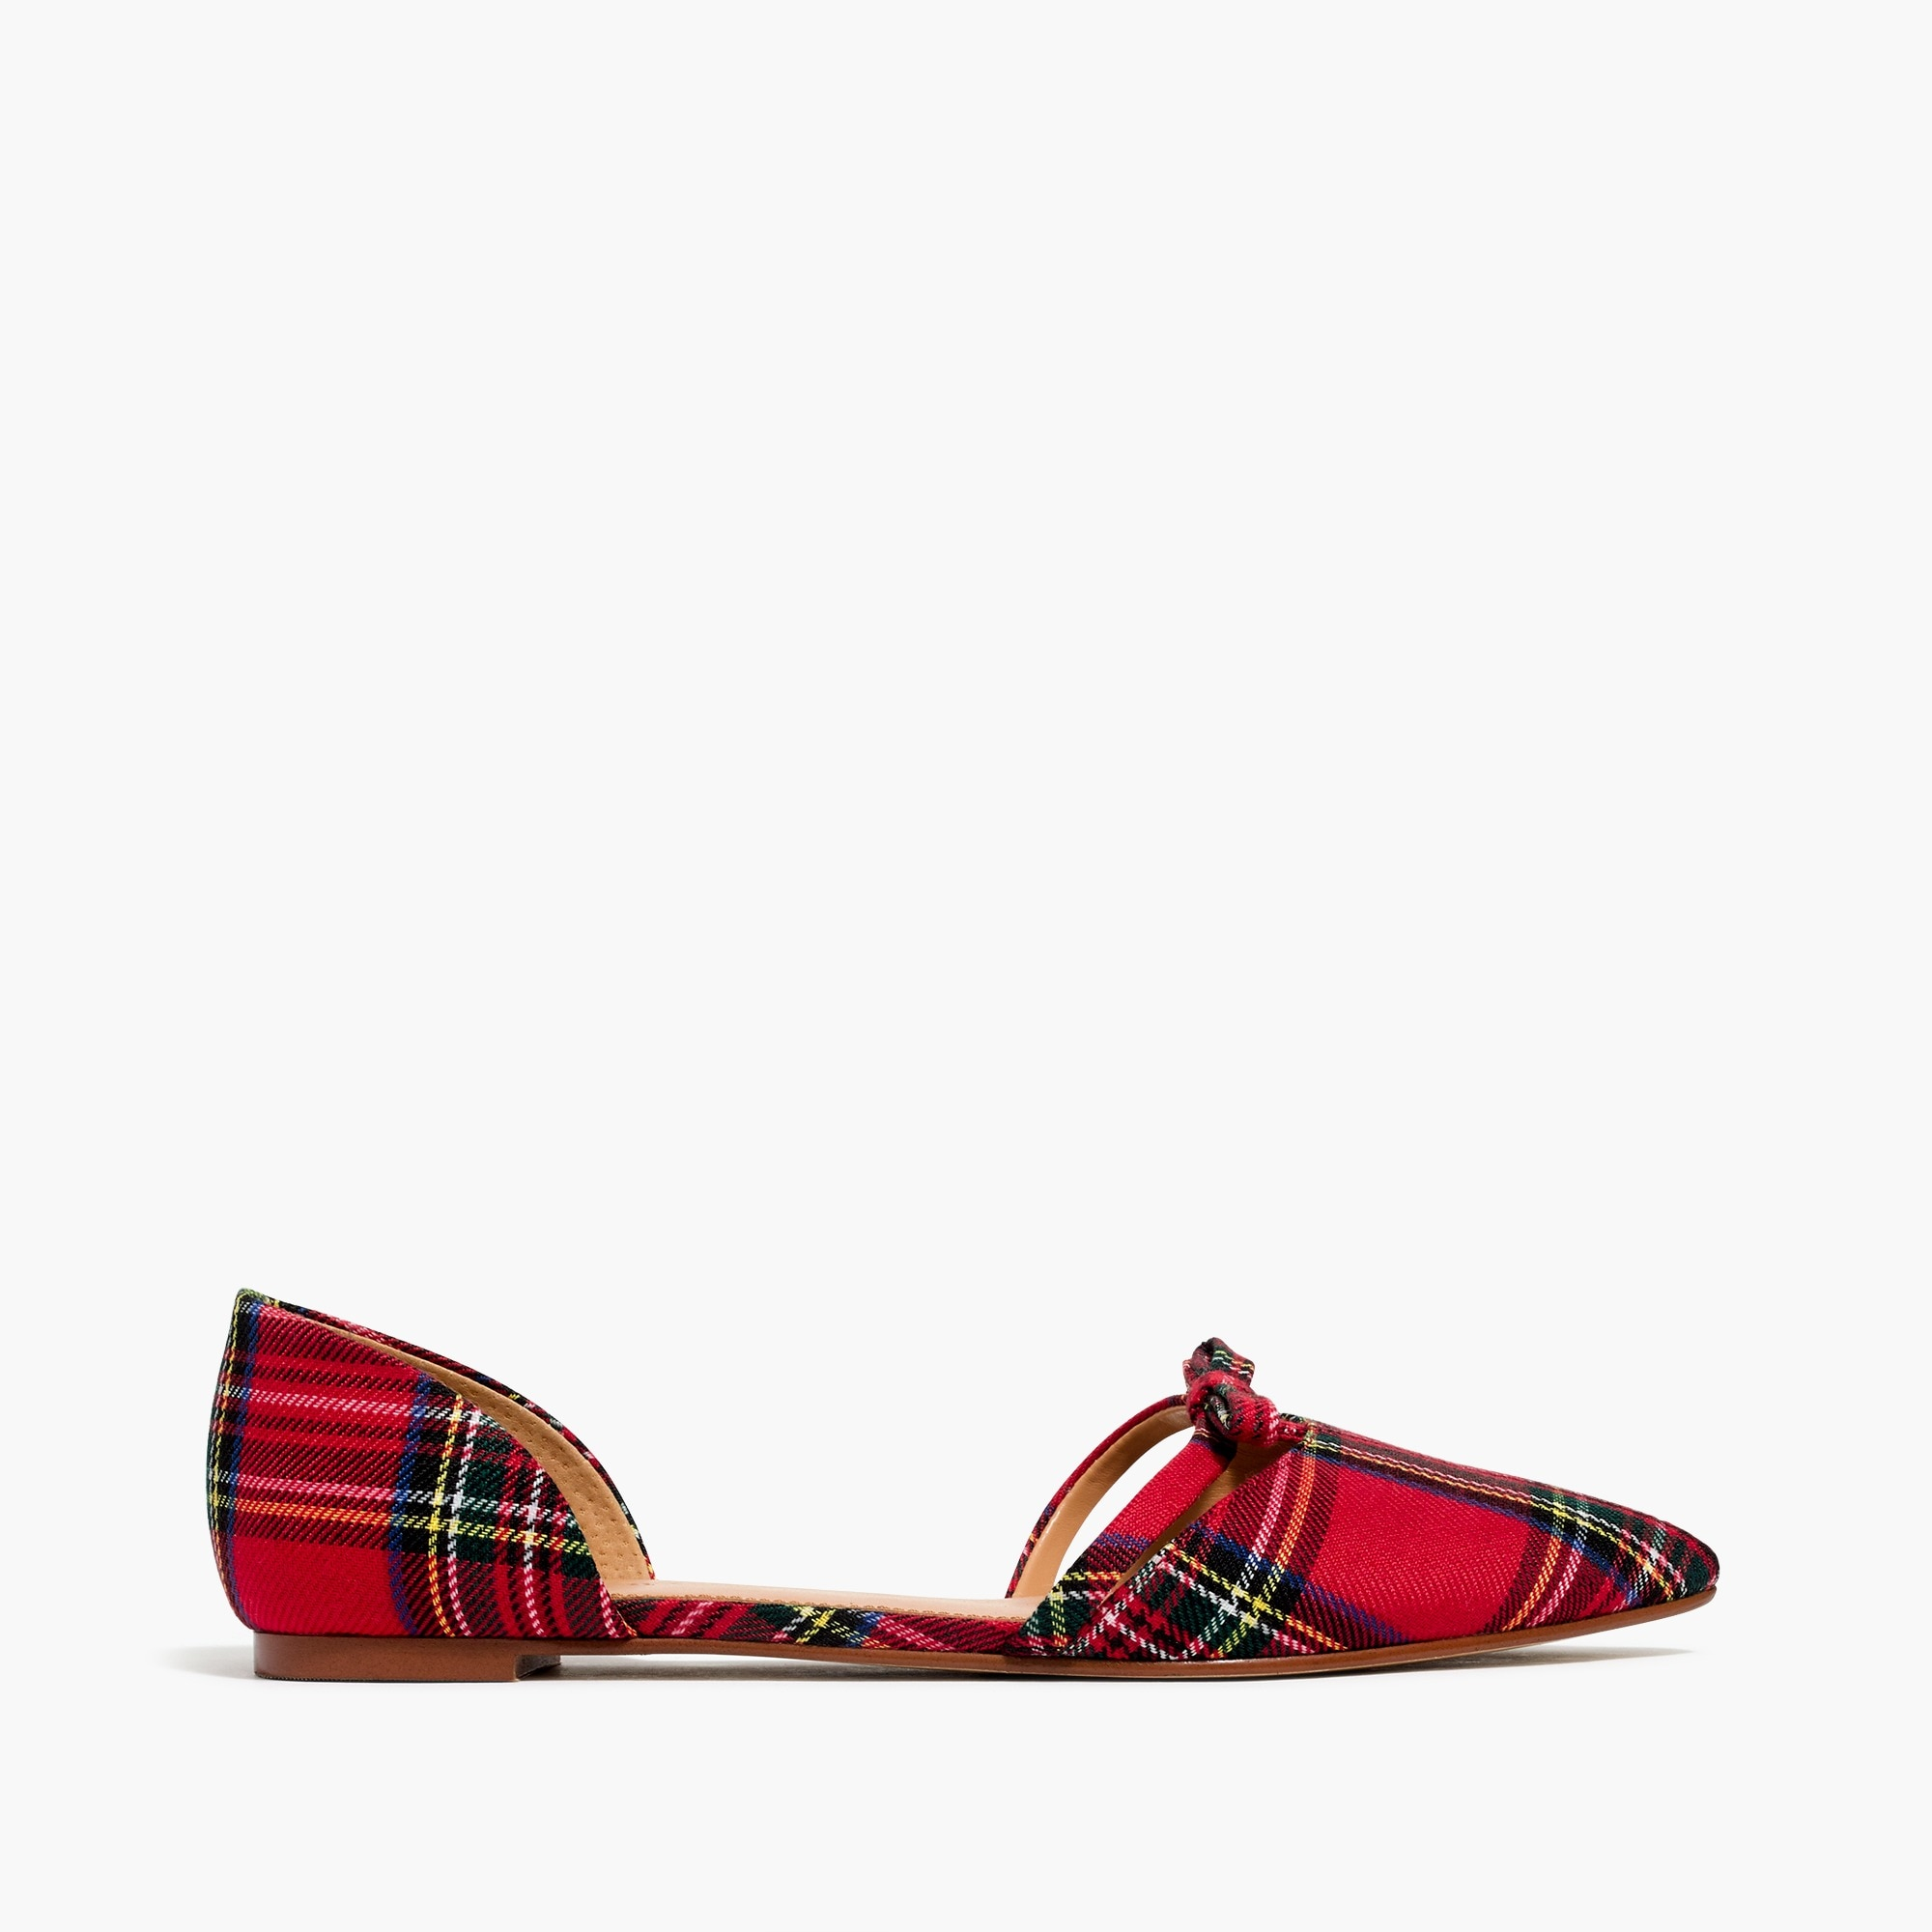 Image 2 for Tartan plaid d'orsay flat with bow